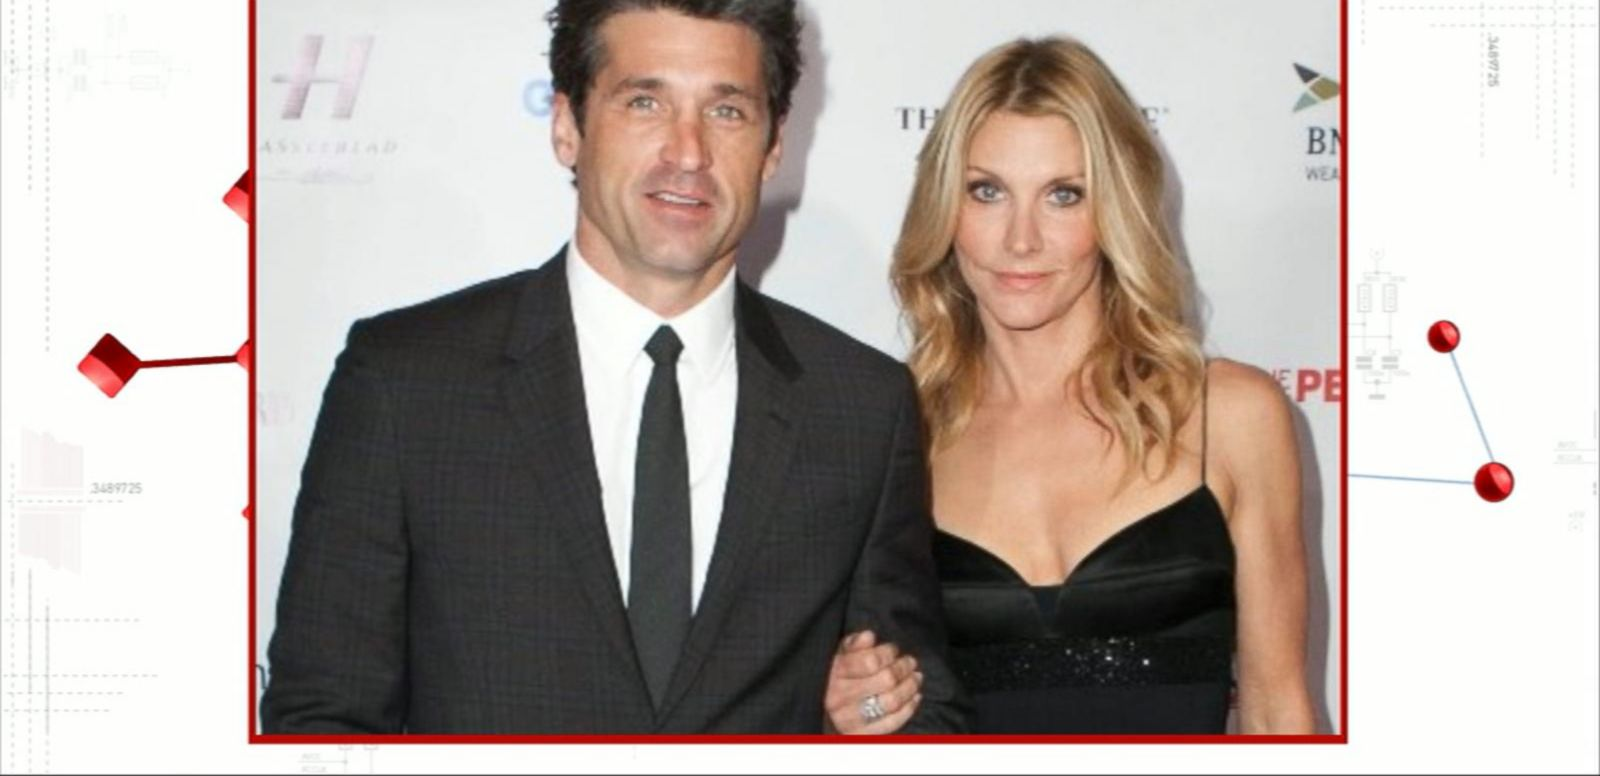 VIDEO: Patrick Dempsey Selling His Malibu Home, Asking $14.5M